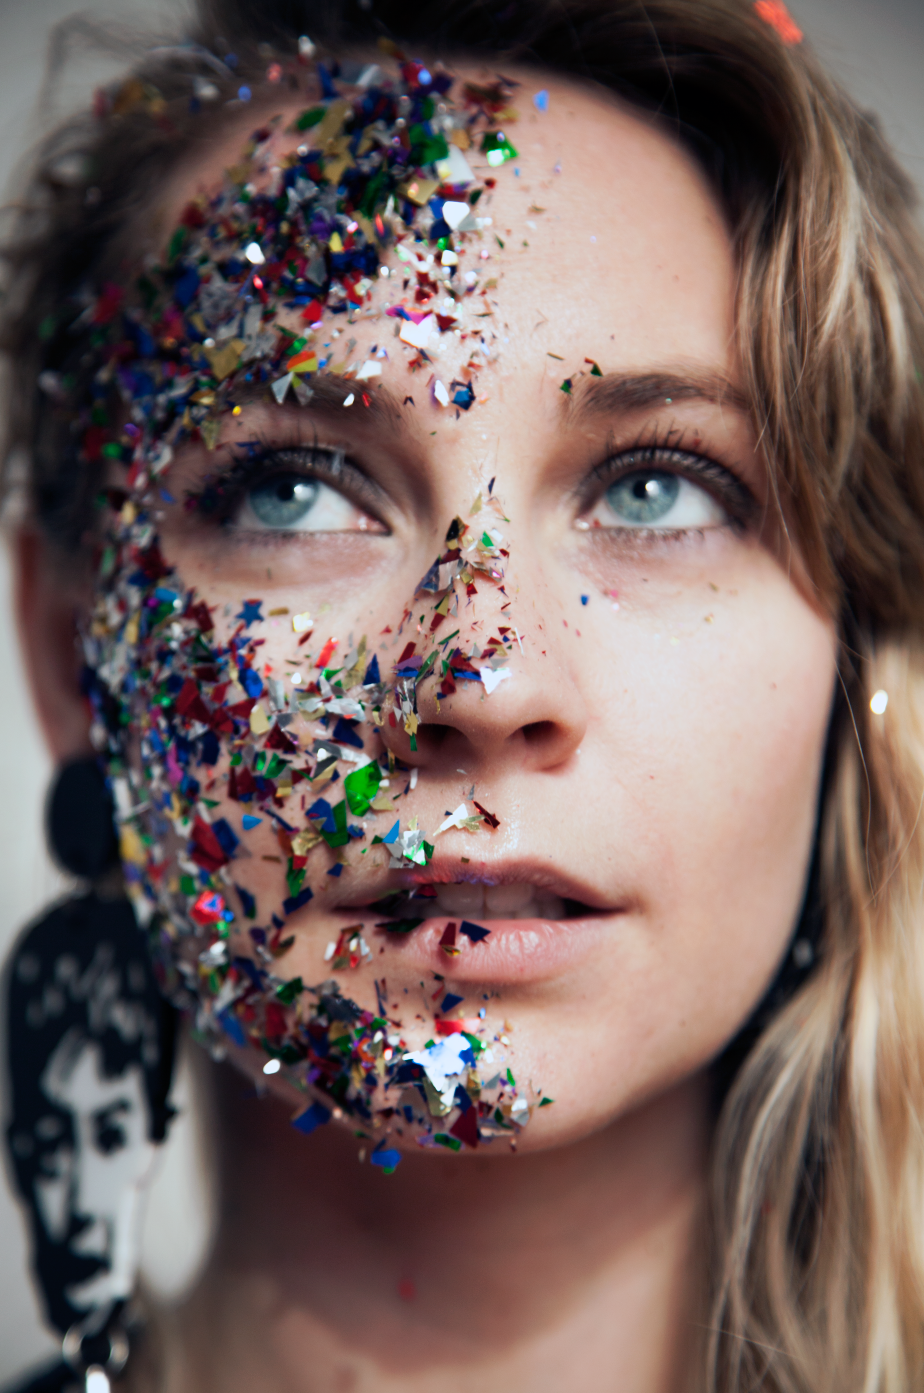 Photo @ The Confetti Project (Jelena Aleksich)